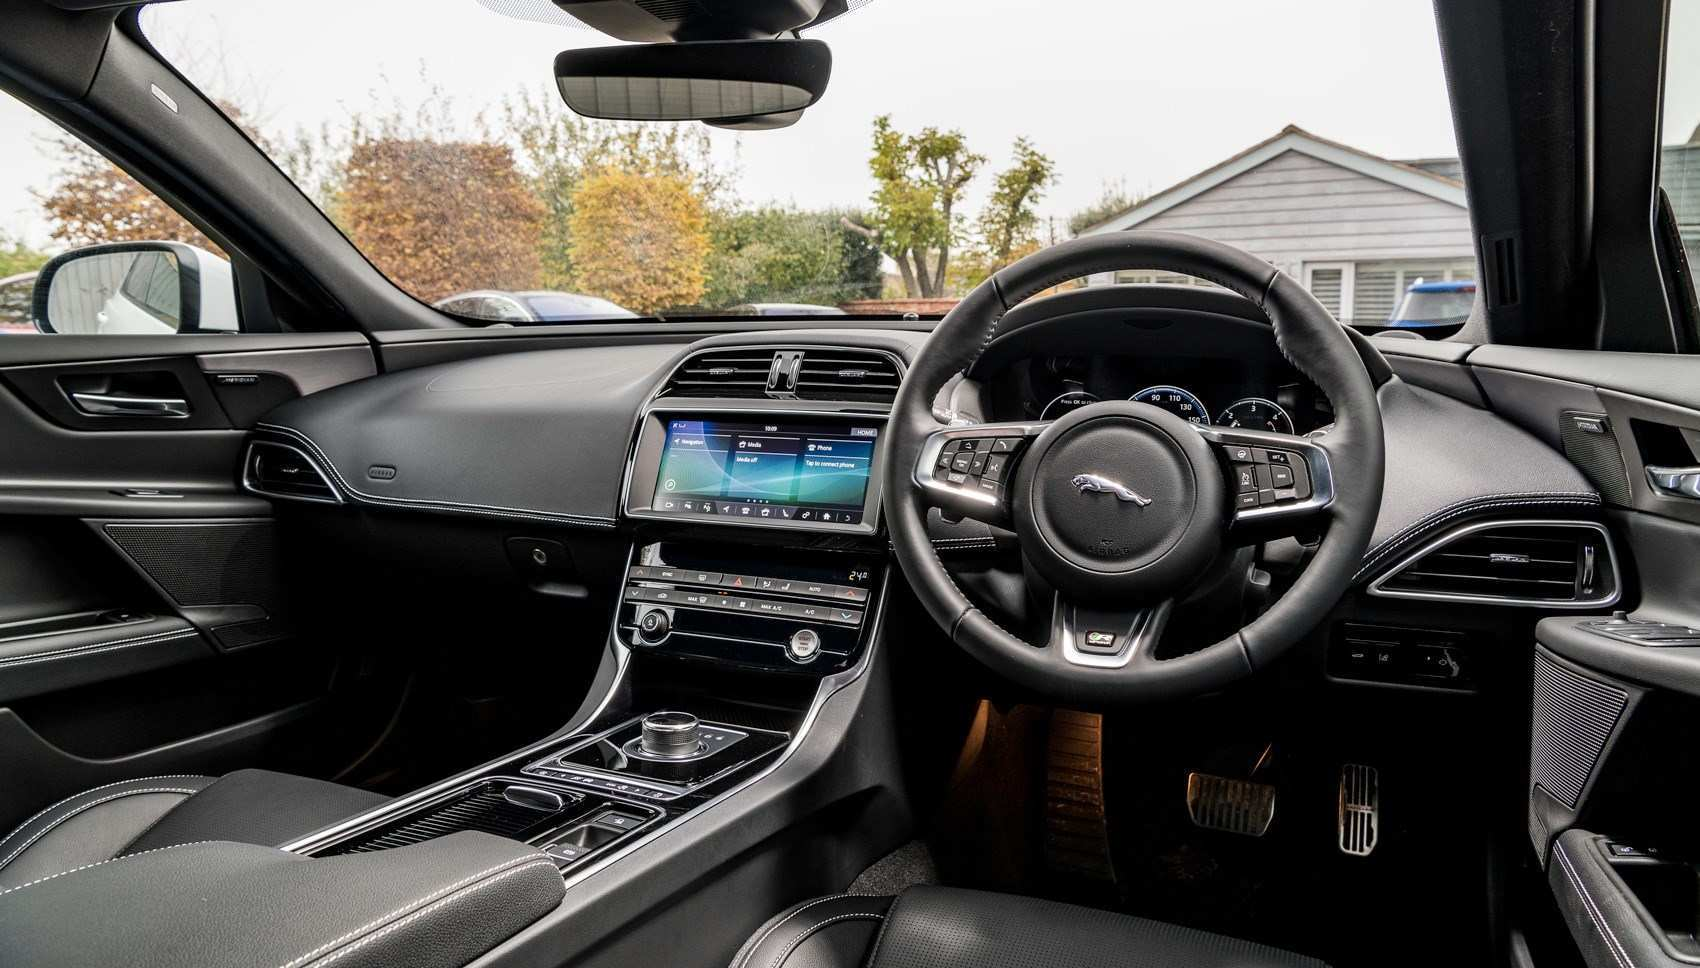 34 New New Jaguar Xe 2020 Interior Redesign And Review